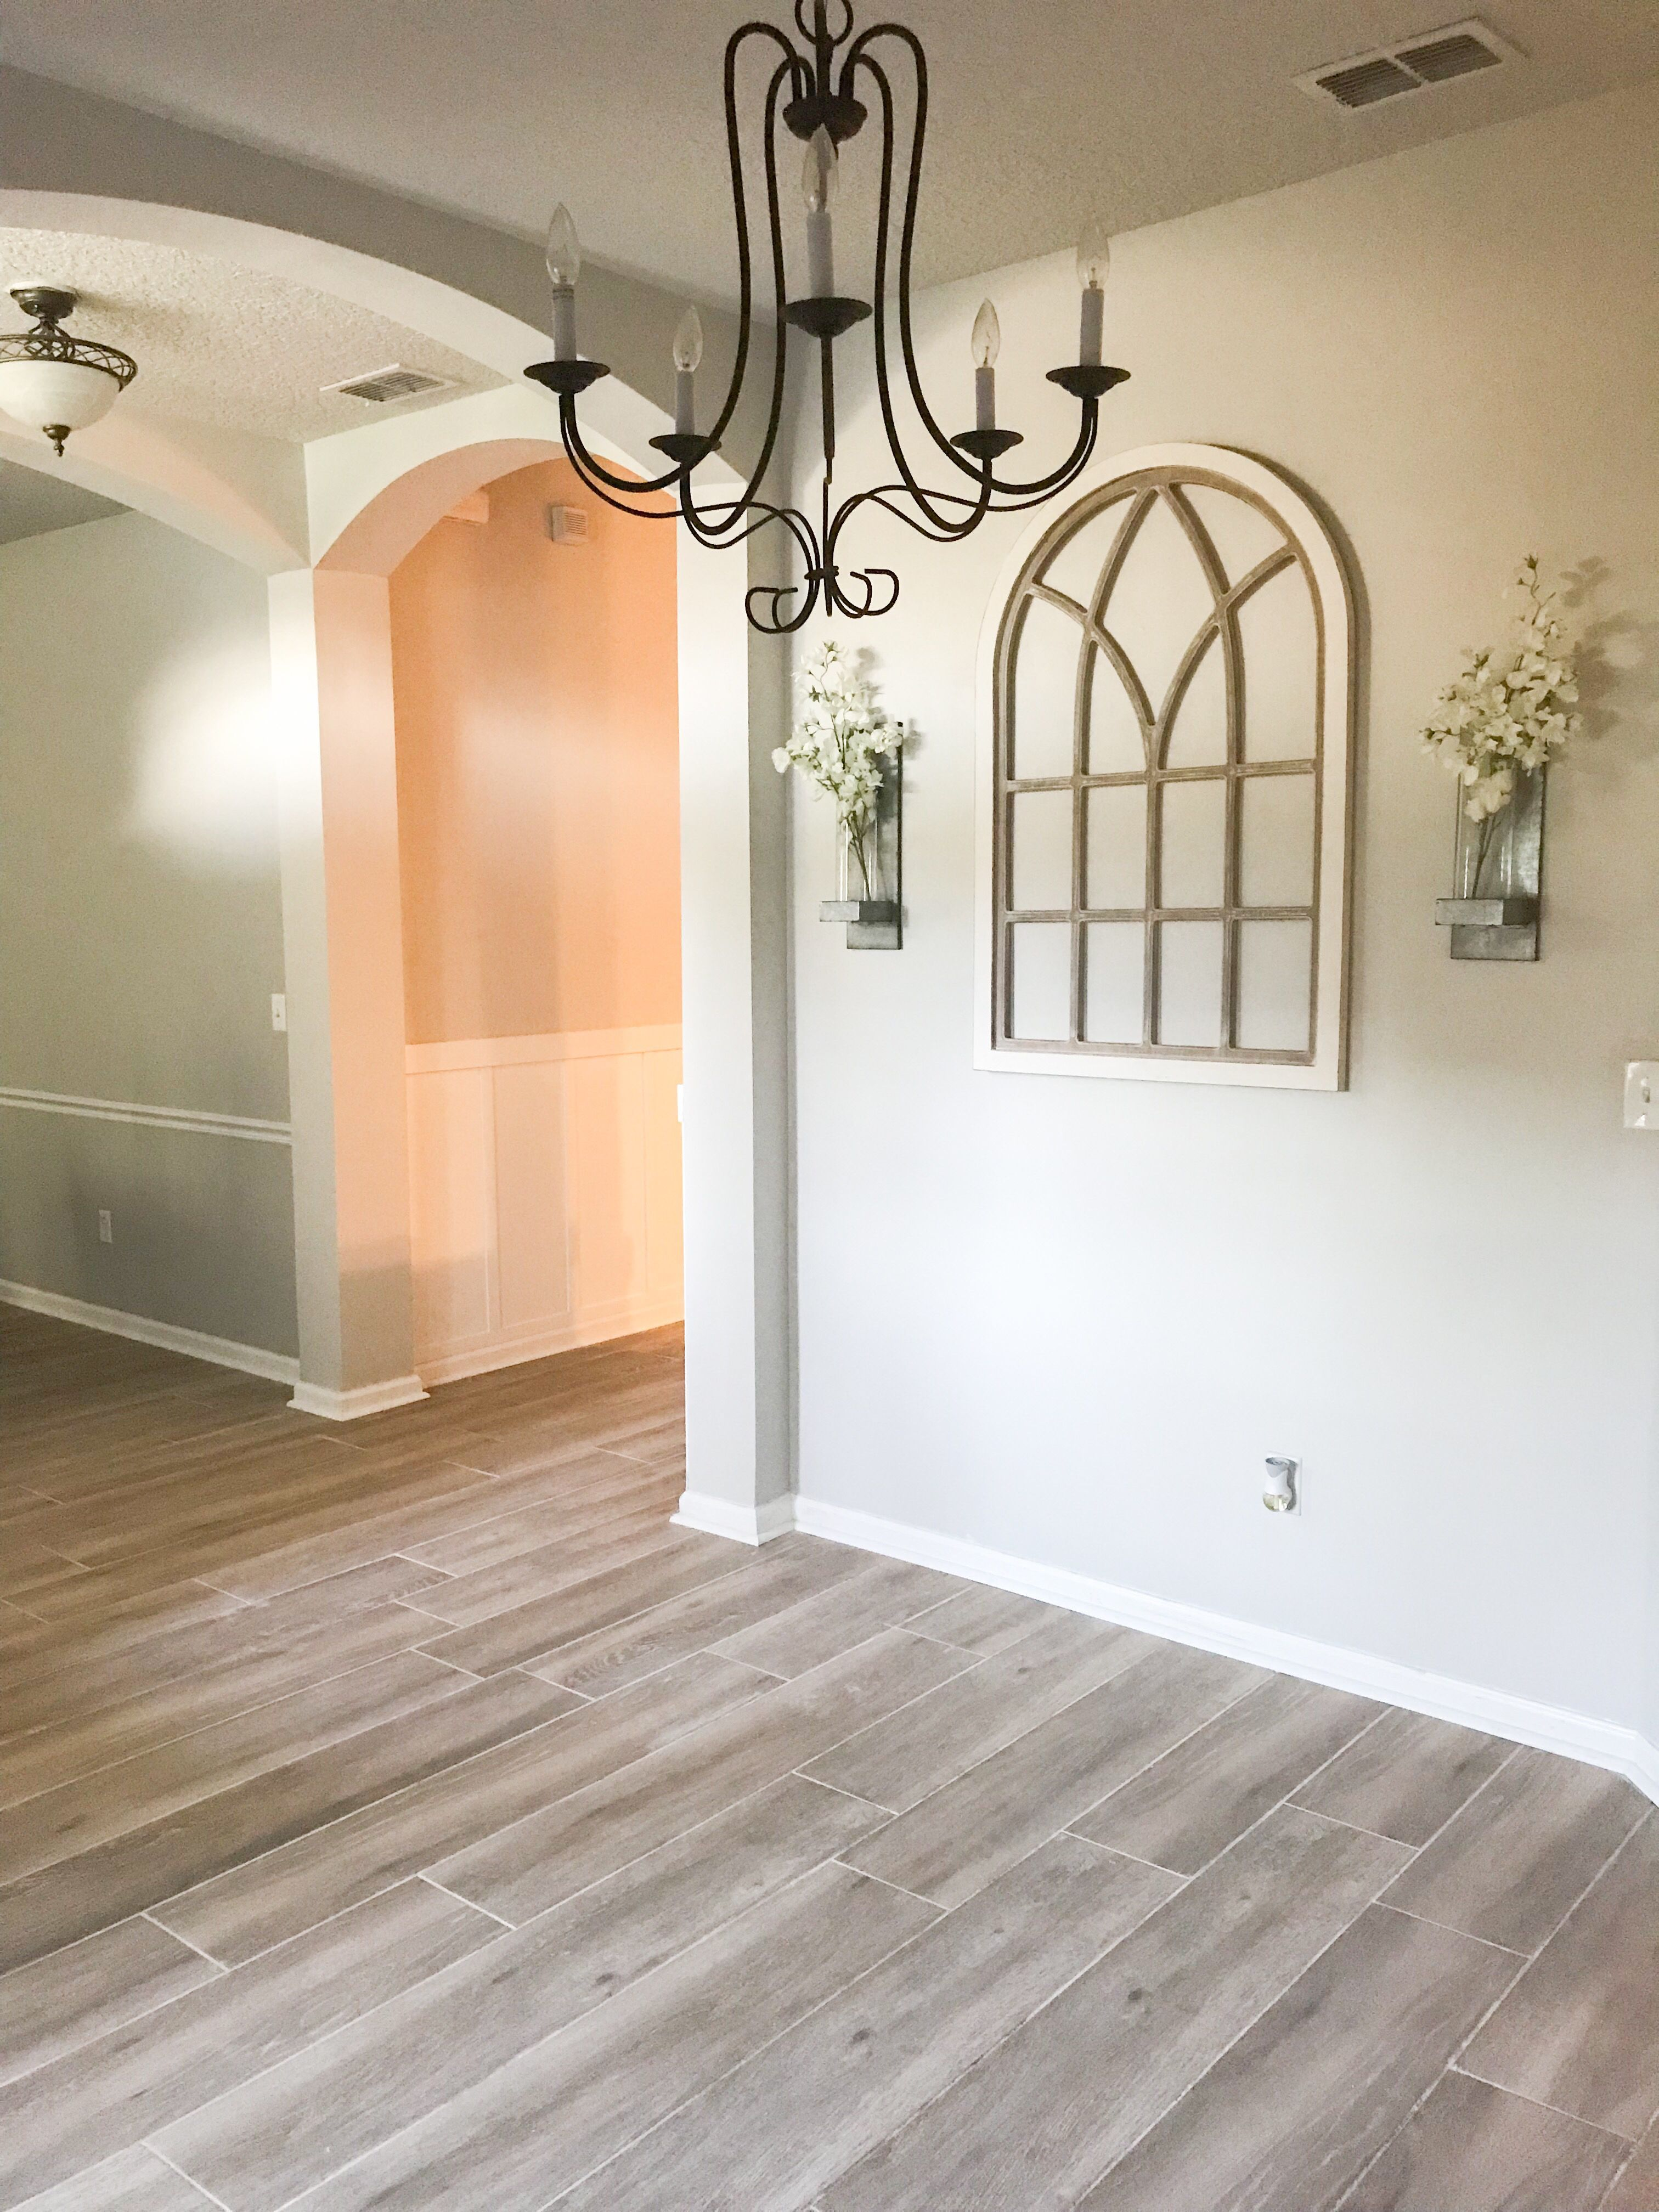 Pin On Home Decor Home Remodel